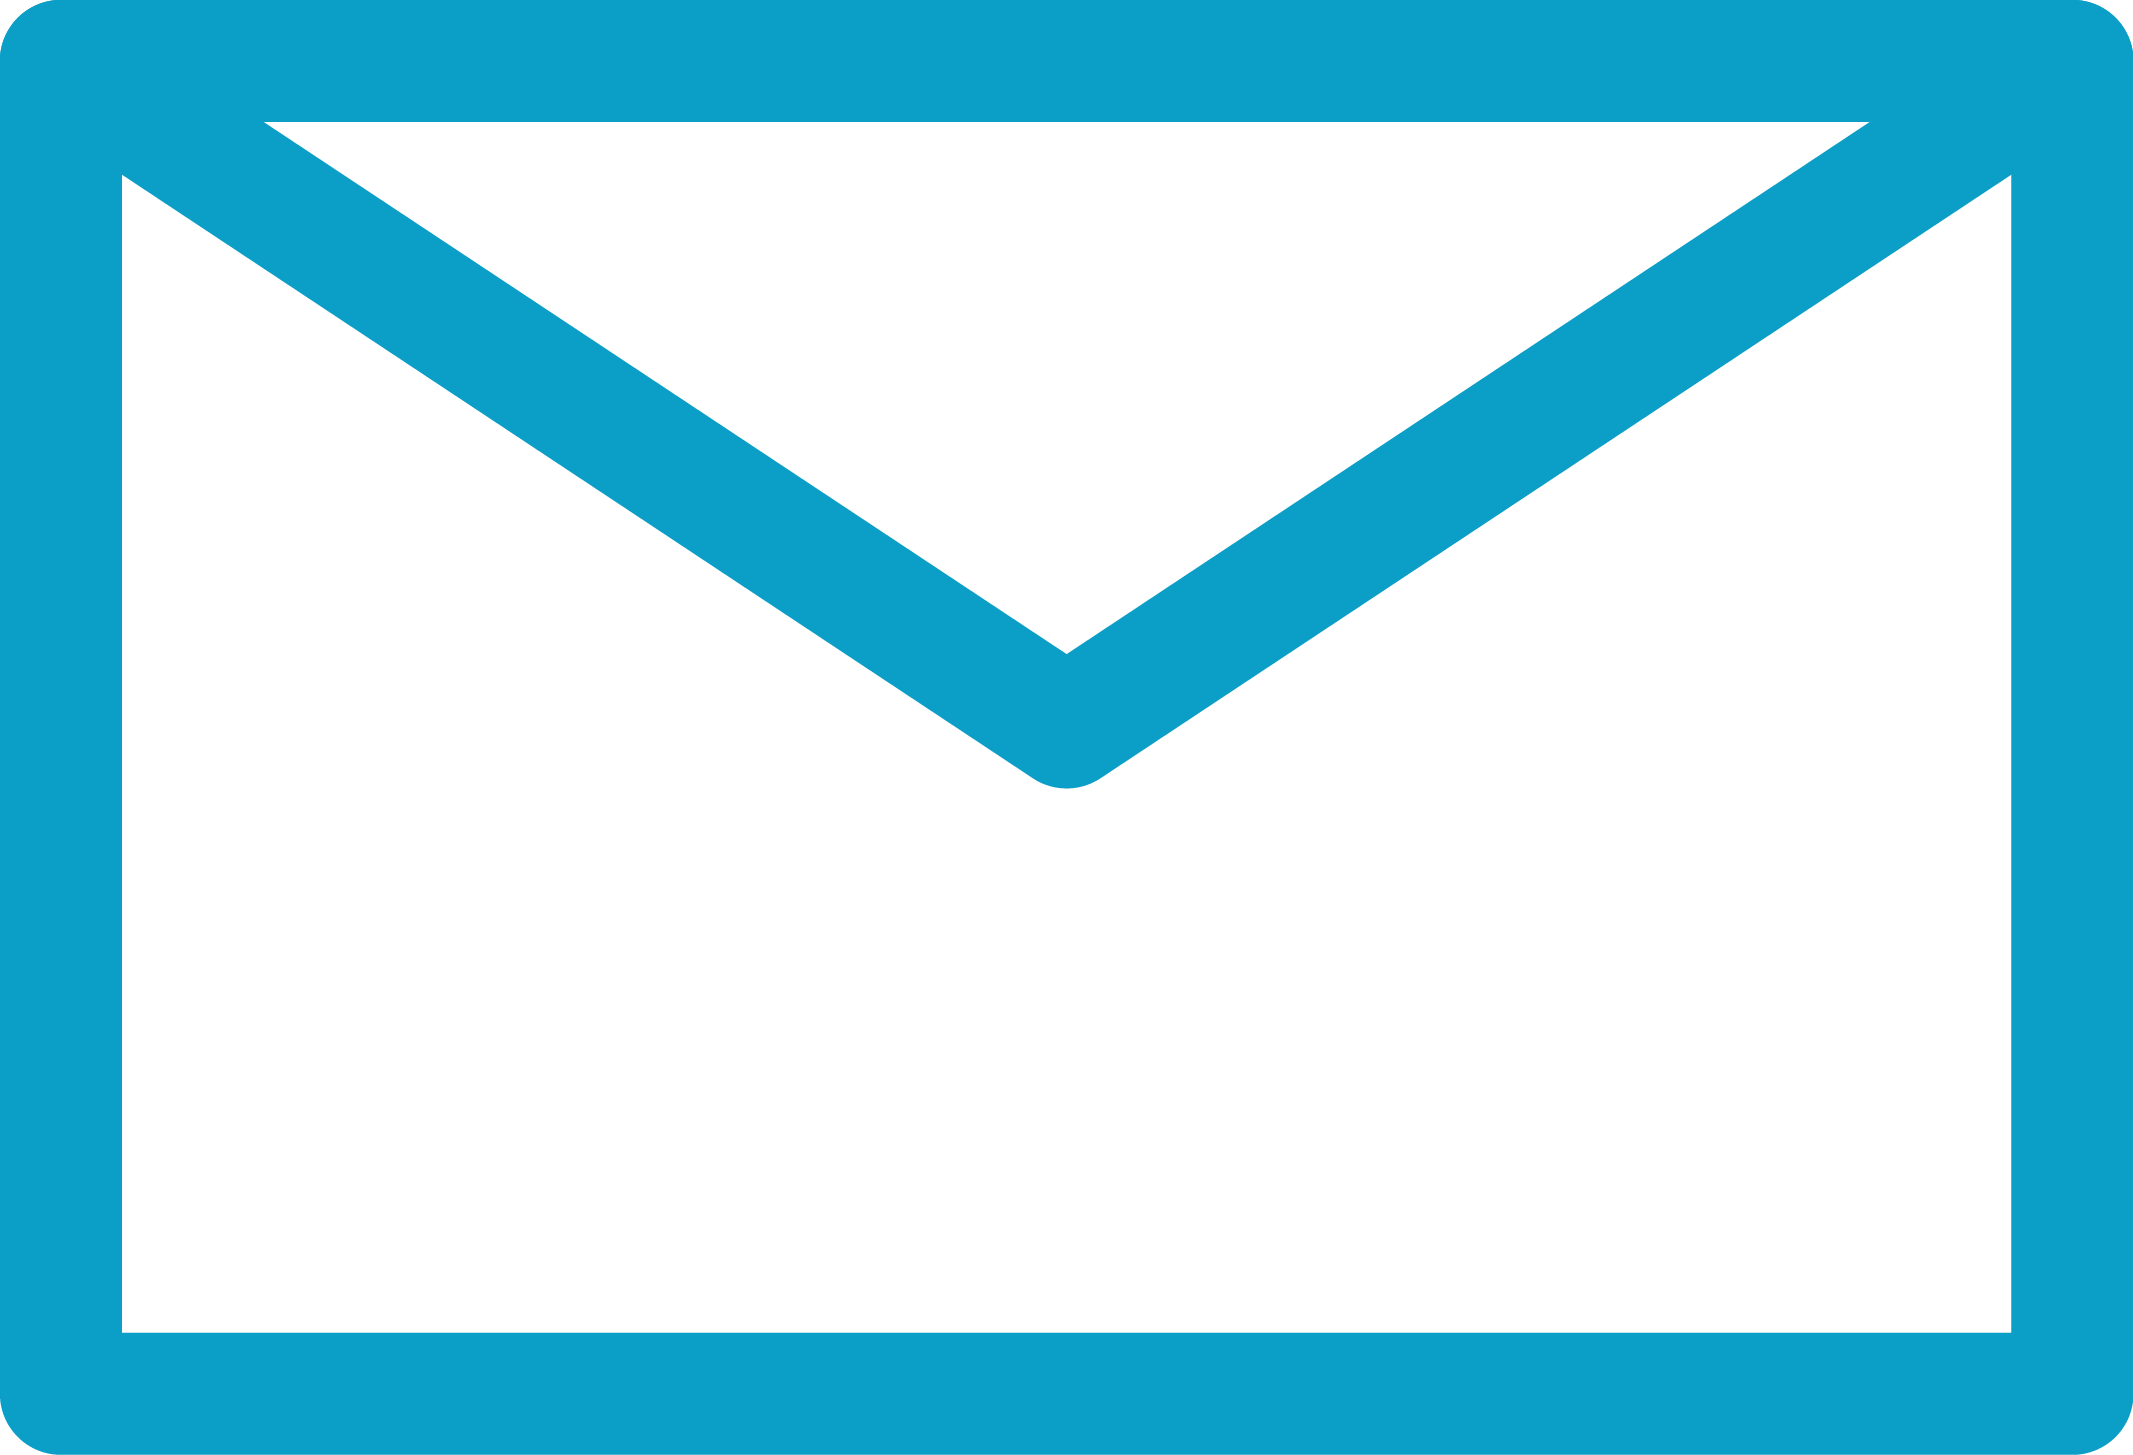 icon_envelope